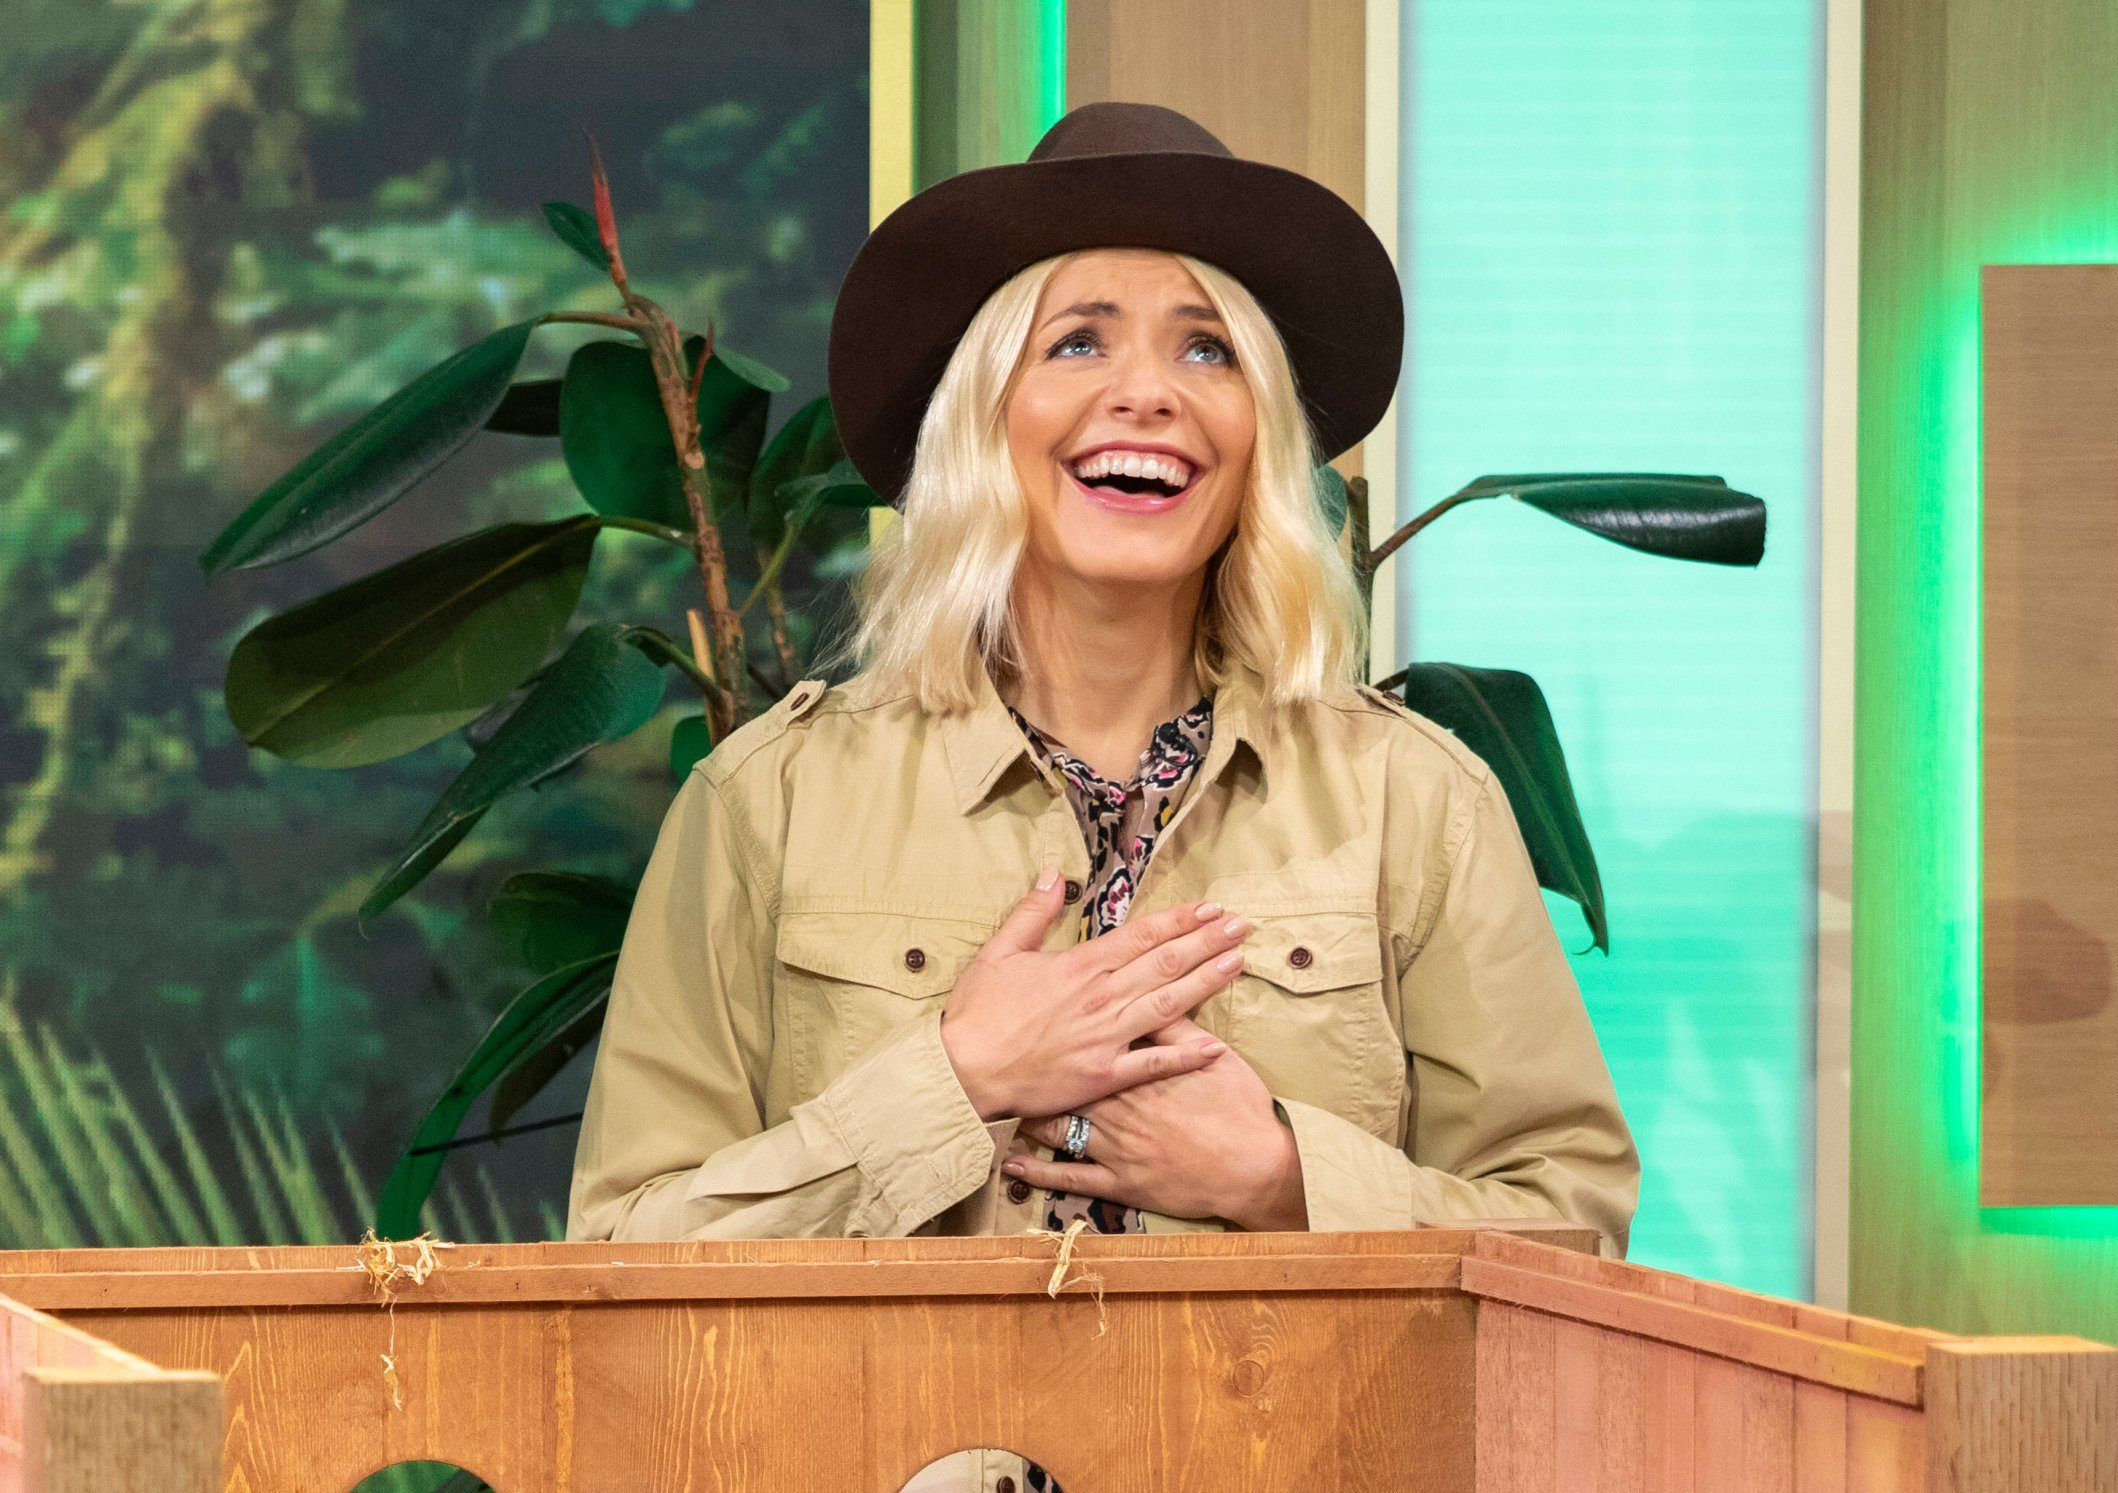 Scarlett Moffatt is excited for Holly Willoughby on I'm A Celebrity because she's bored of the boys